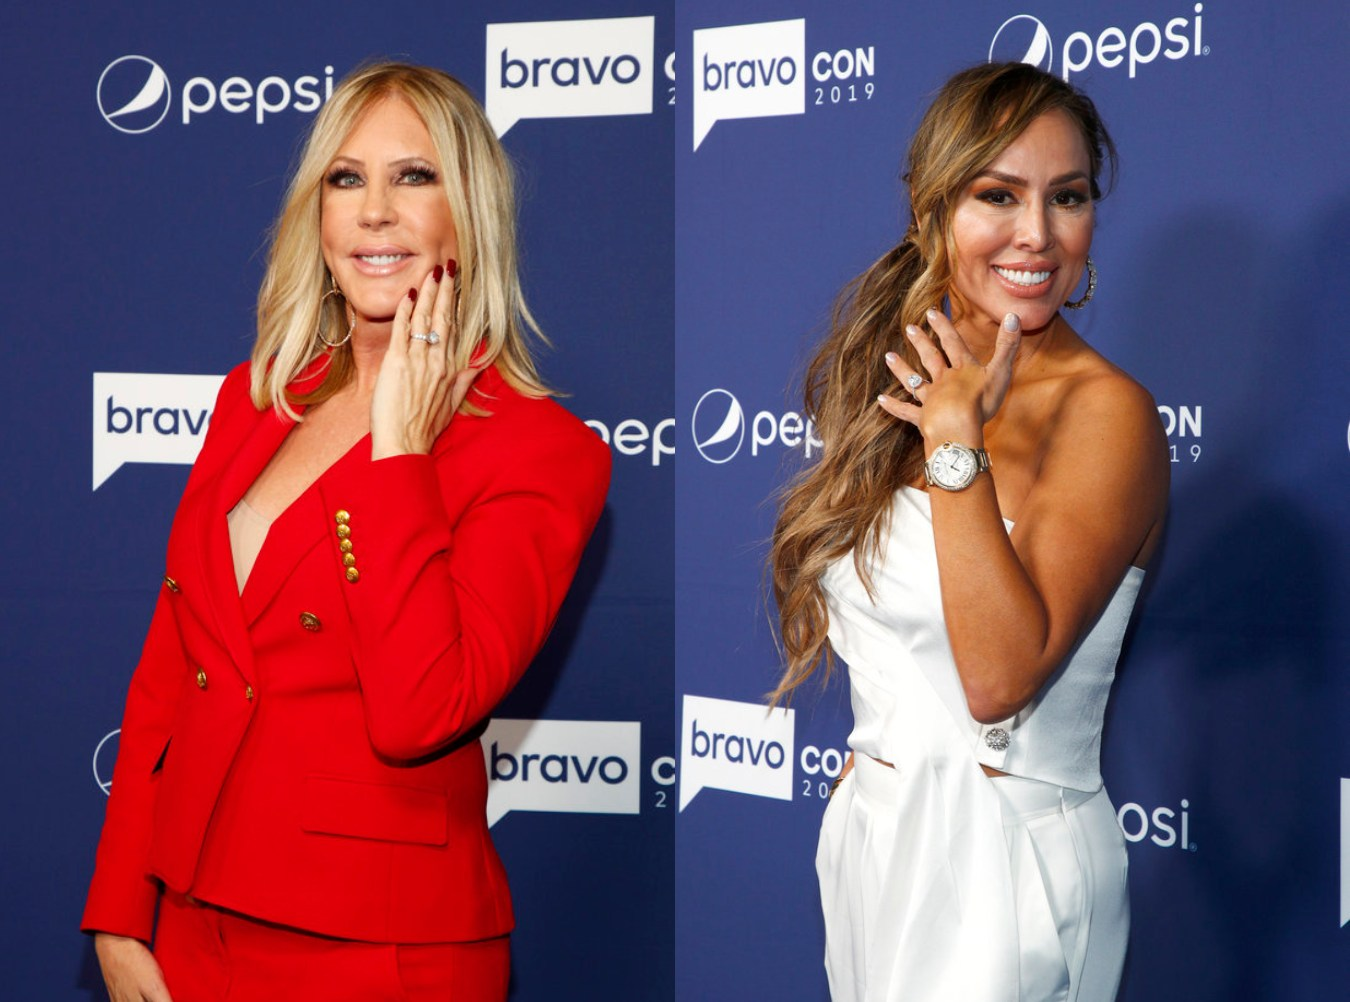 """Vicki Gunvalson Implies Kelly Dodd Got Engaged for a Storyline on the RHOC, Slams Her as """"Irresponsible"""""""